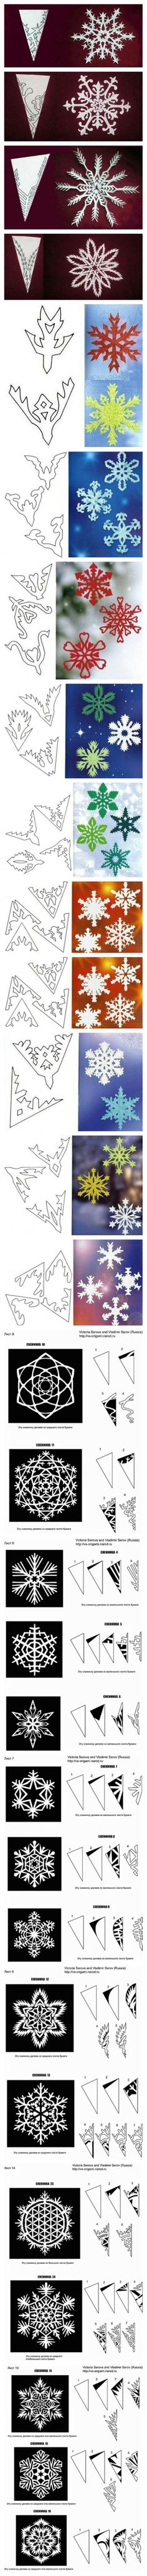 Snowflake patterns; cool!